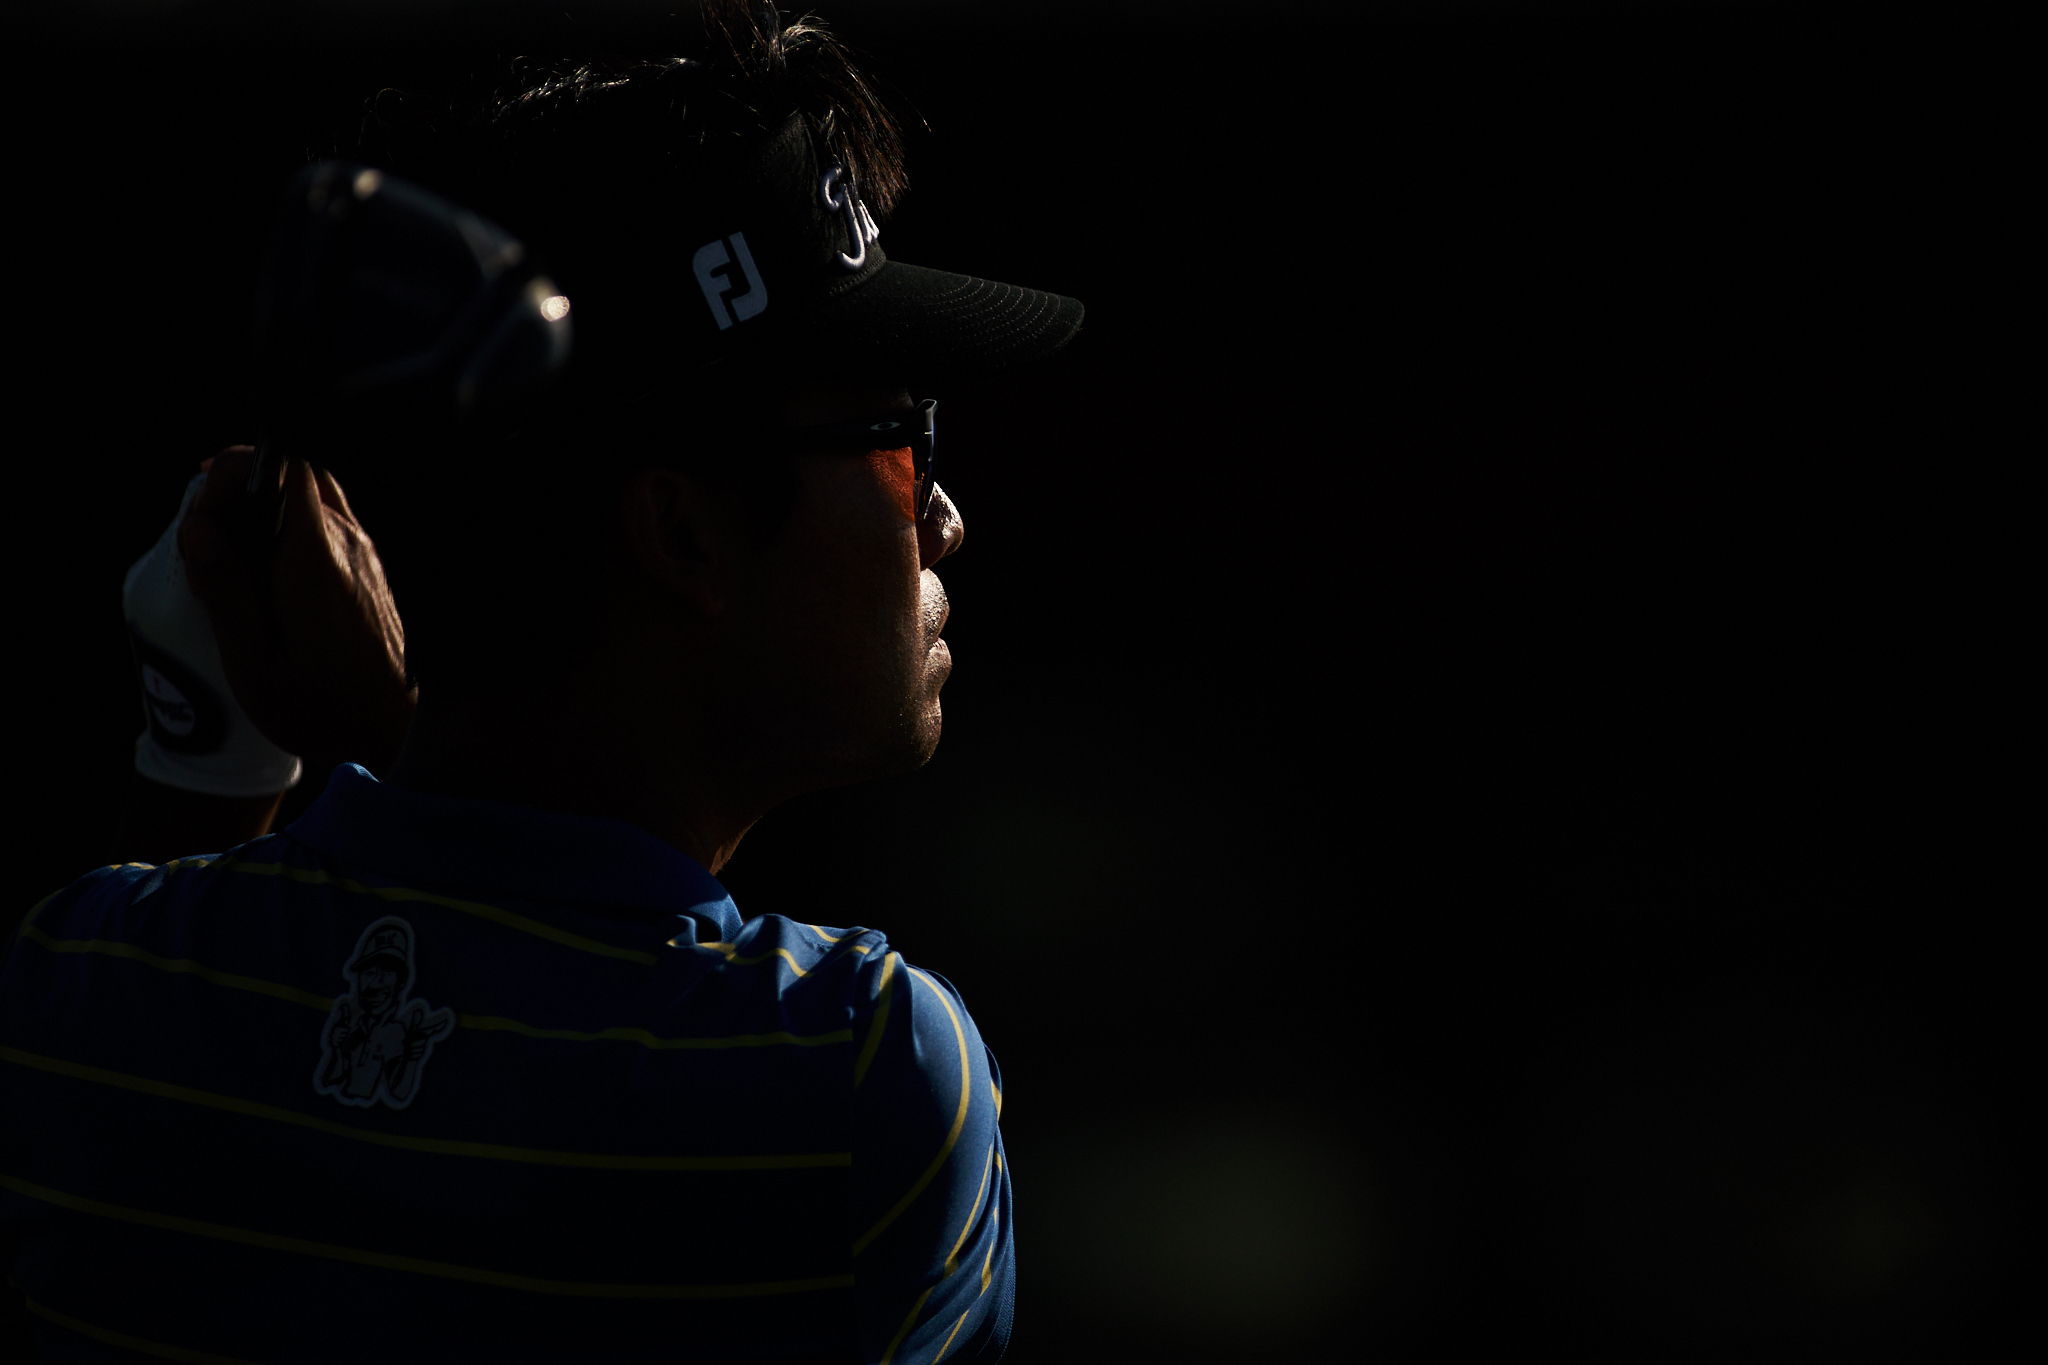 Kevin Na, 2018 Dell Technologies Match Play Championship.  Sony A9, Canon EF 400mm f2.8 L-II lens  with a Sigma MC-11 Canon EF-Sony E Mount adapter.